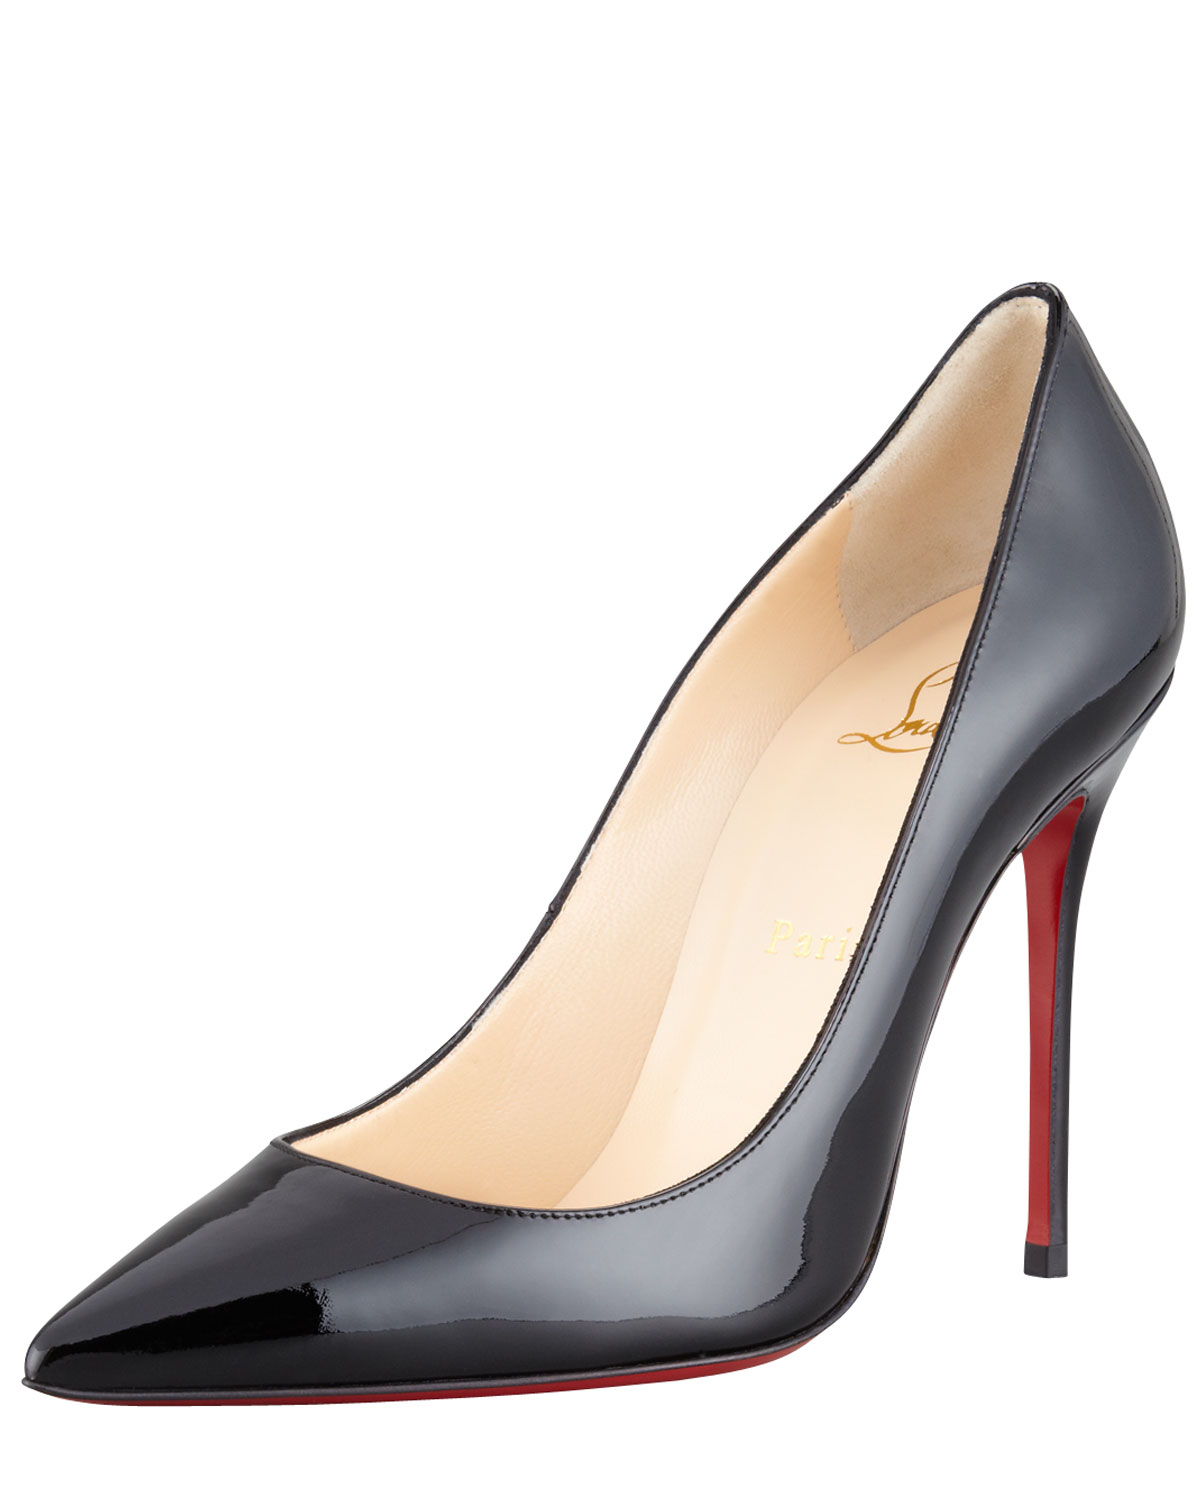 Christian louboutin Decollete Patent Leather Stiletto Red Sole ...